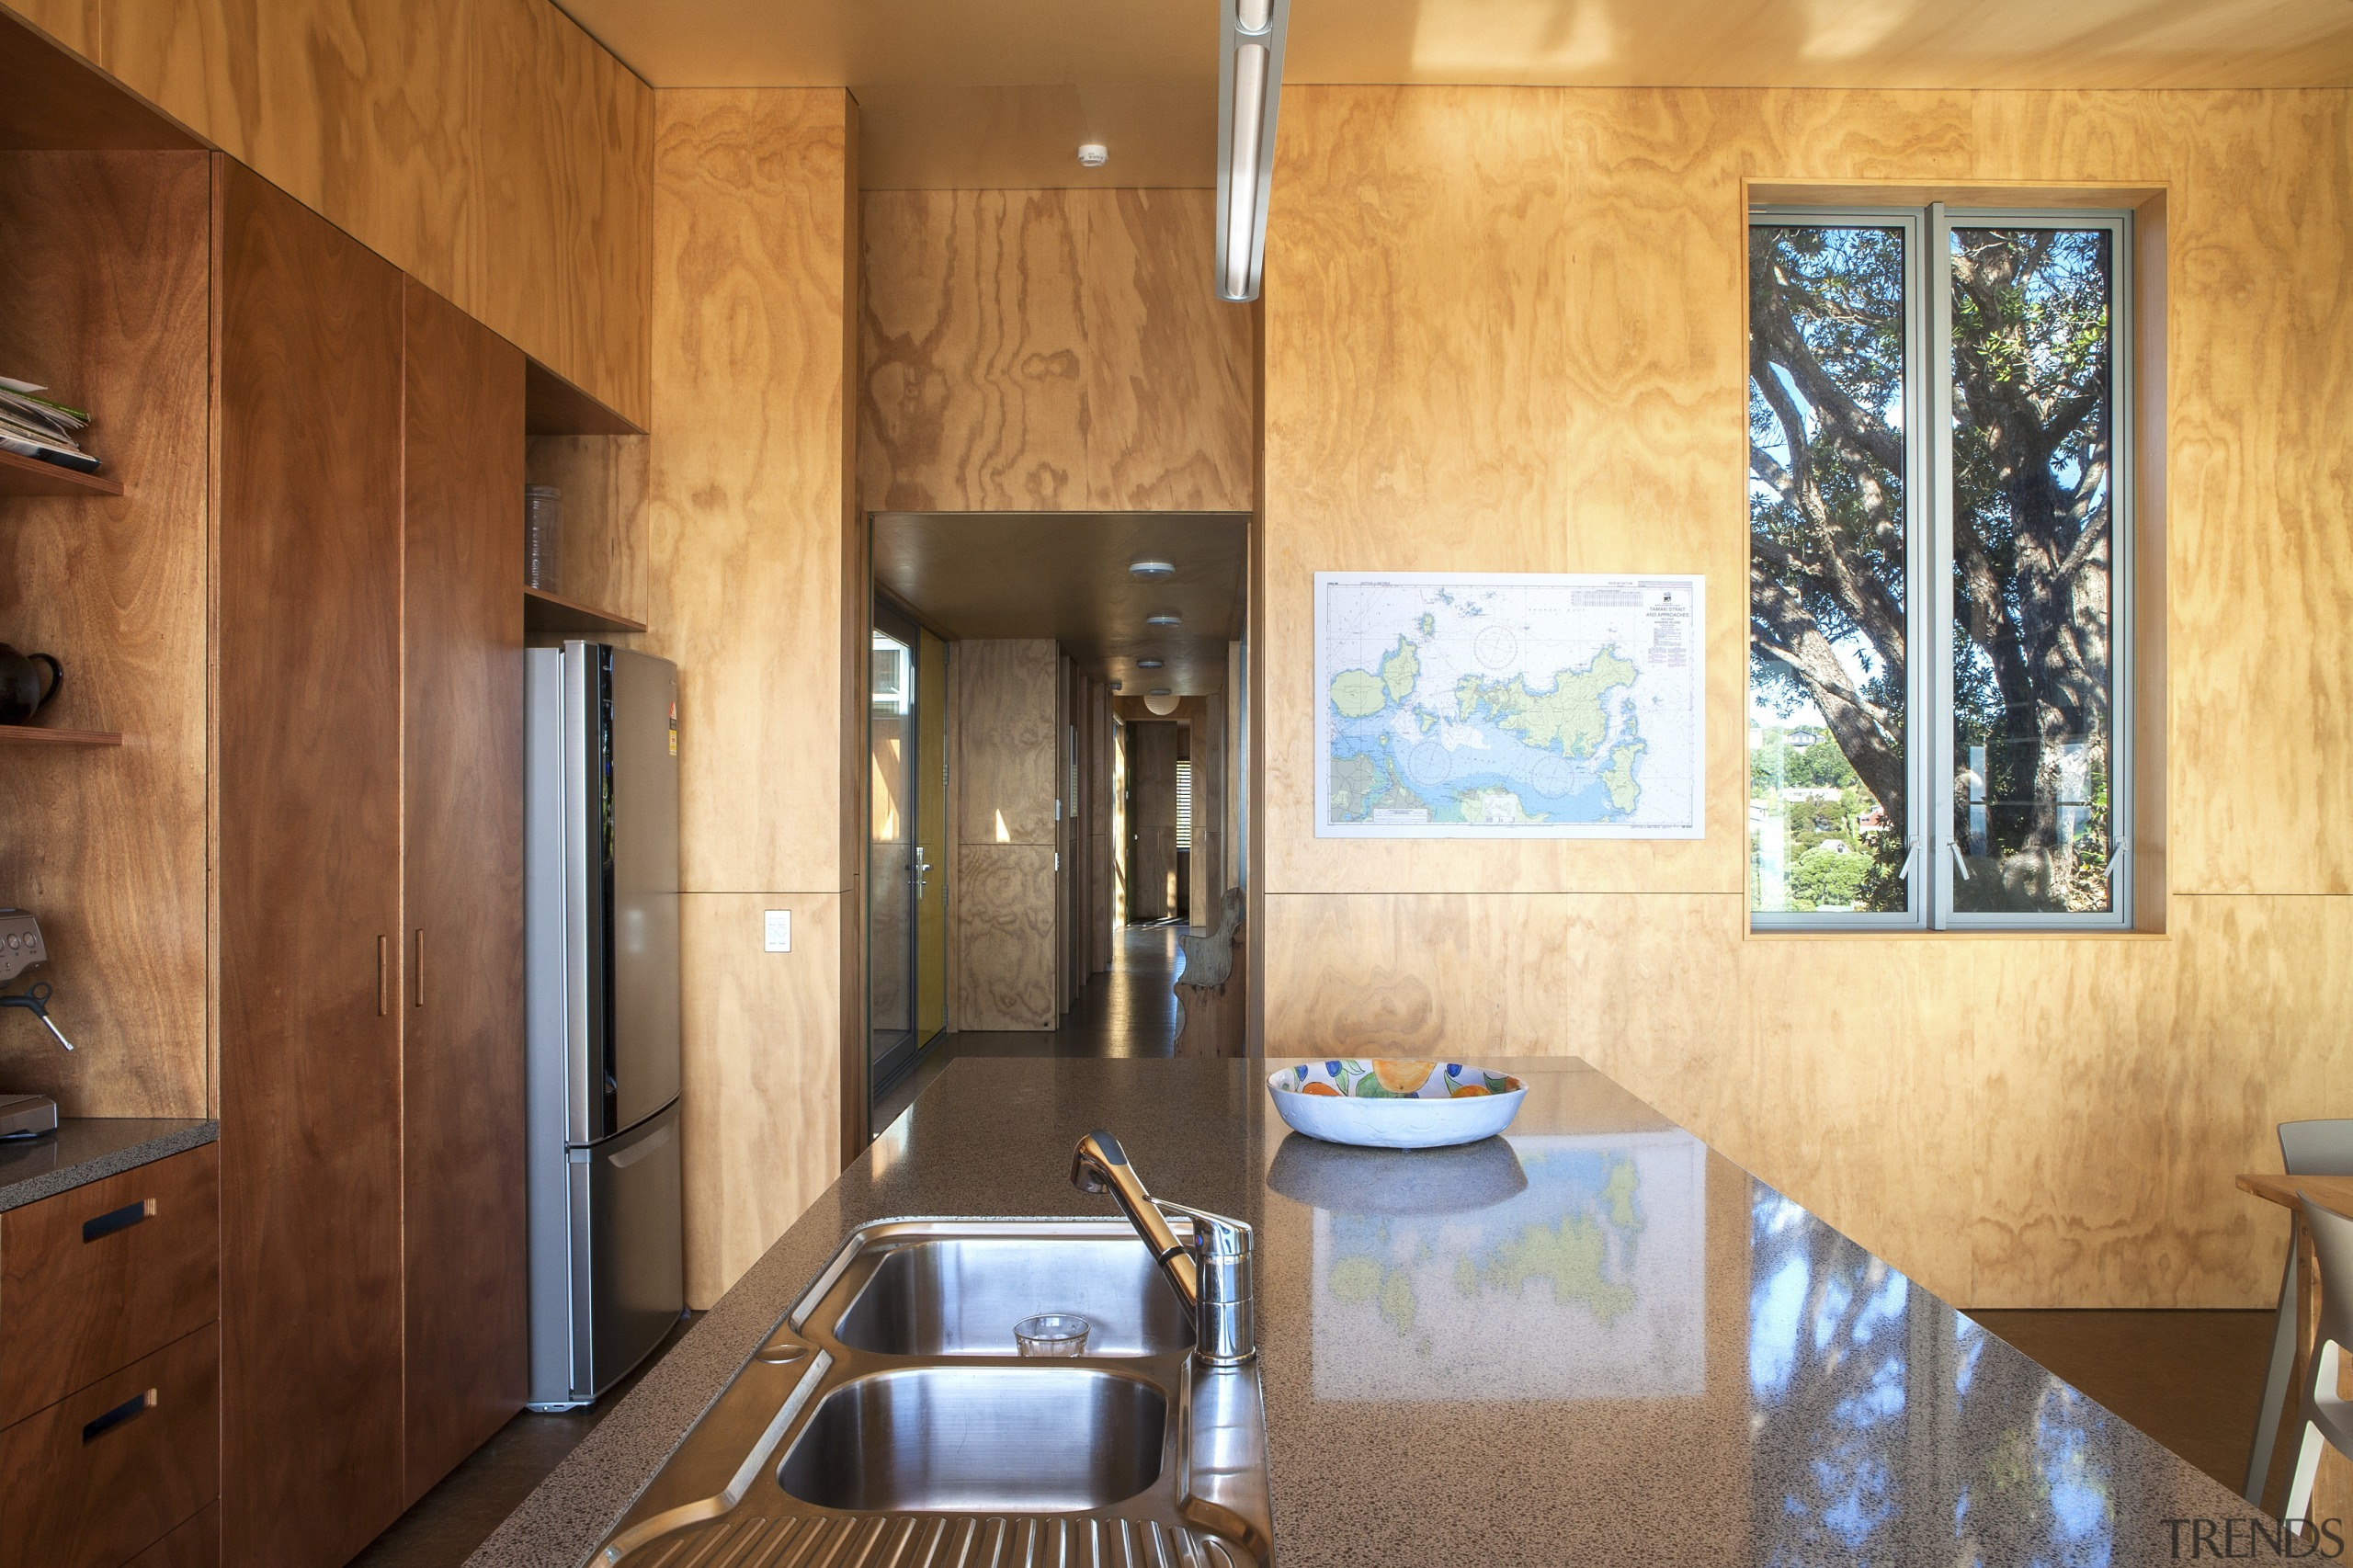 Radiata pine ply clads the walls throughout the architecture, cabinetry, ceiling, countertop, estate, home, interior design, real estate, room, wood, brown, orange